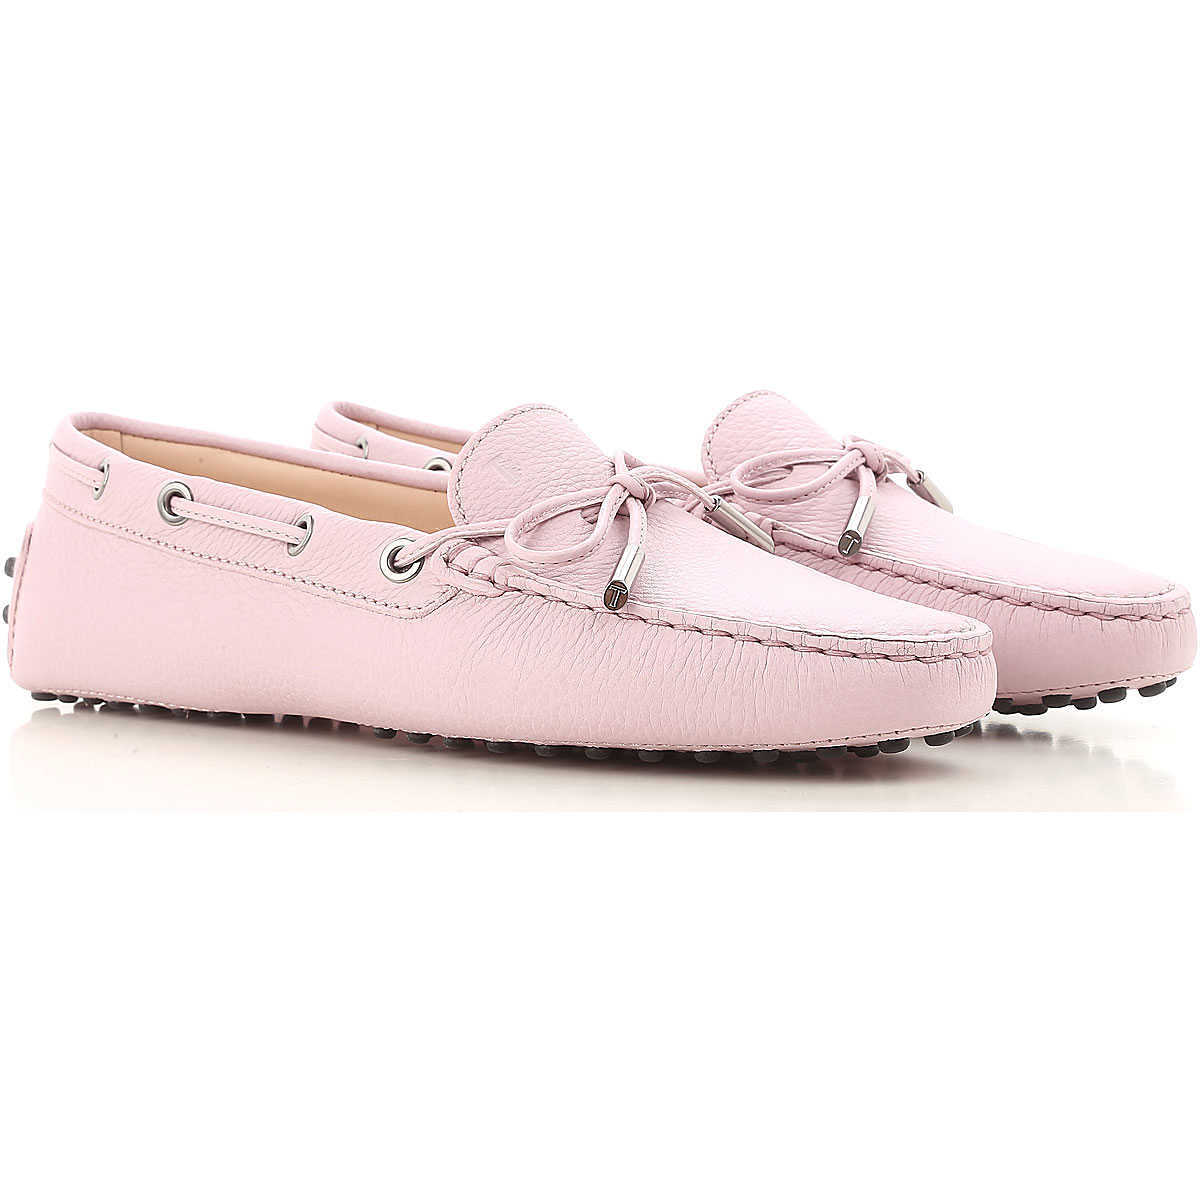 Tods Loafers for Women On Sale Mauve DK - GOOFASH - Womens FLAT SHOES